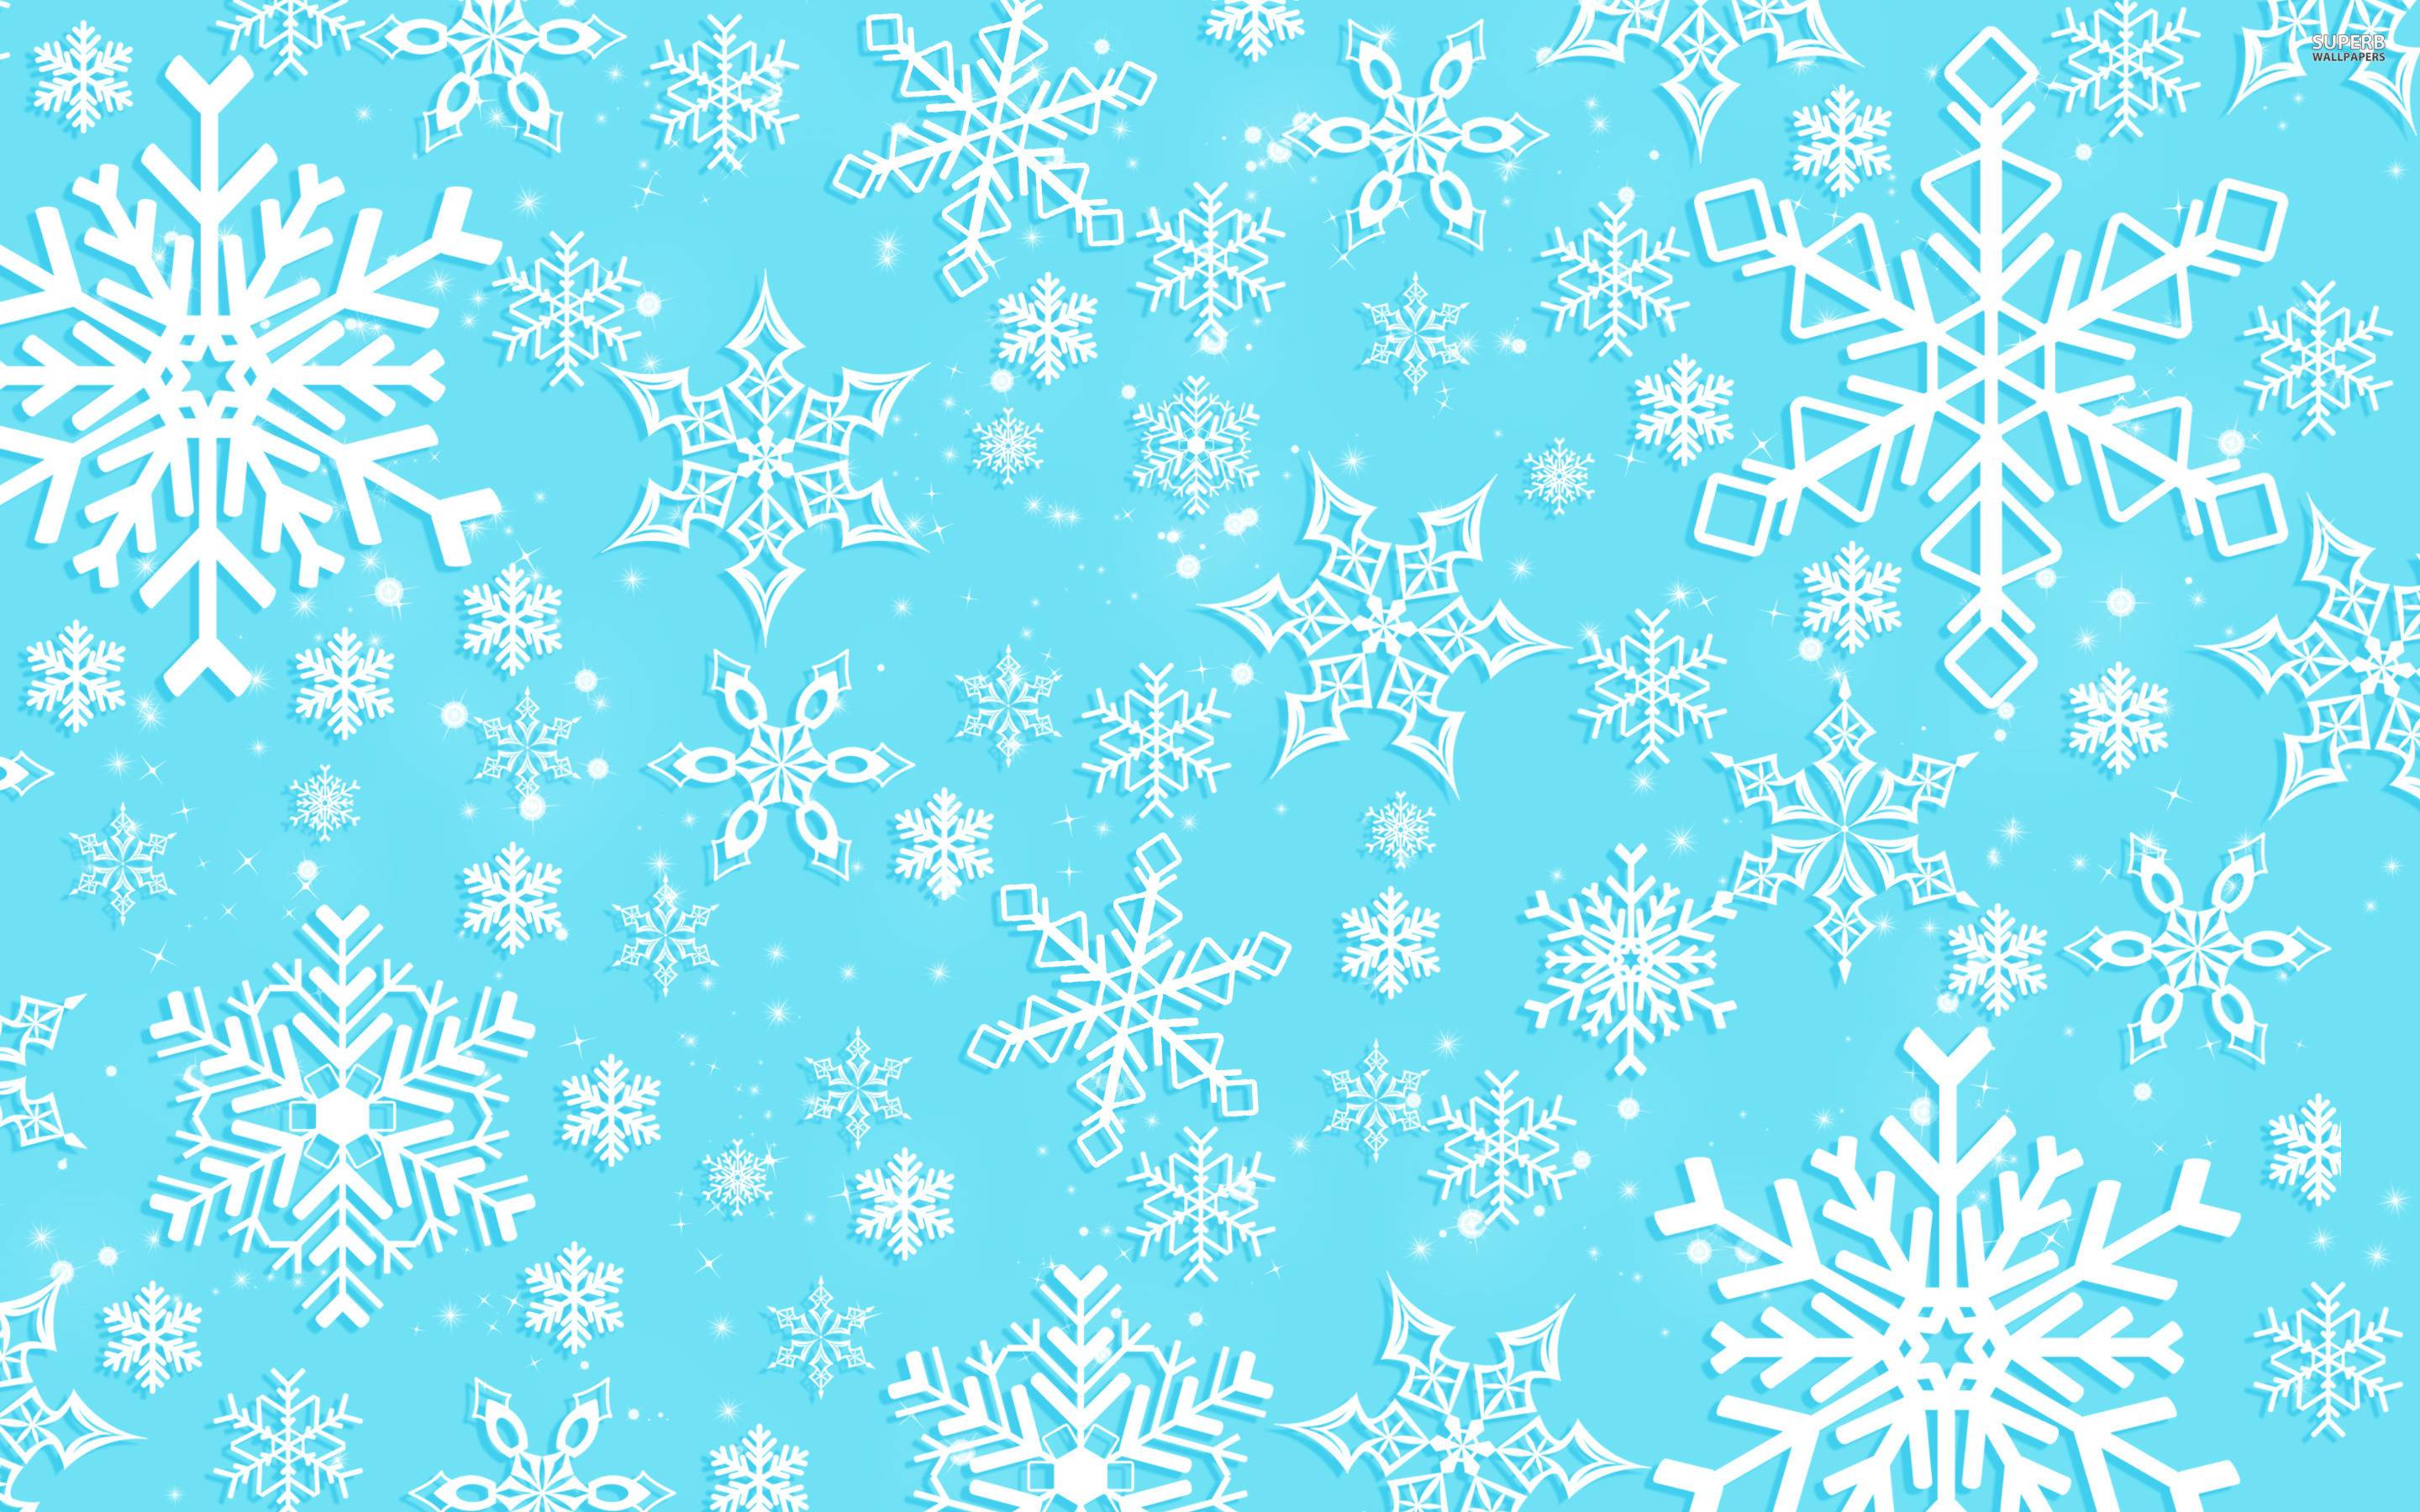 Snowflakes wallpapers wallpaper cave